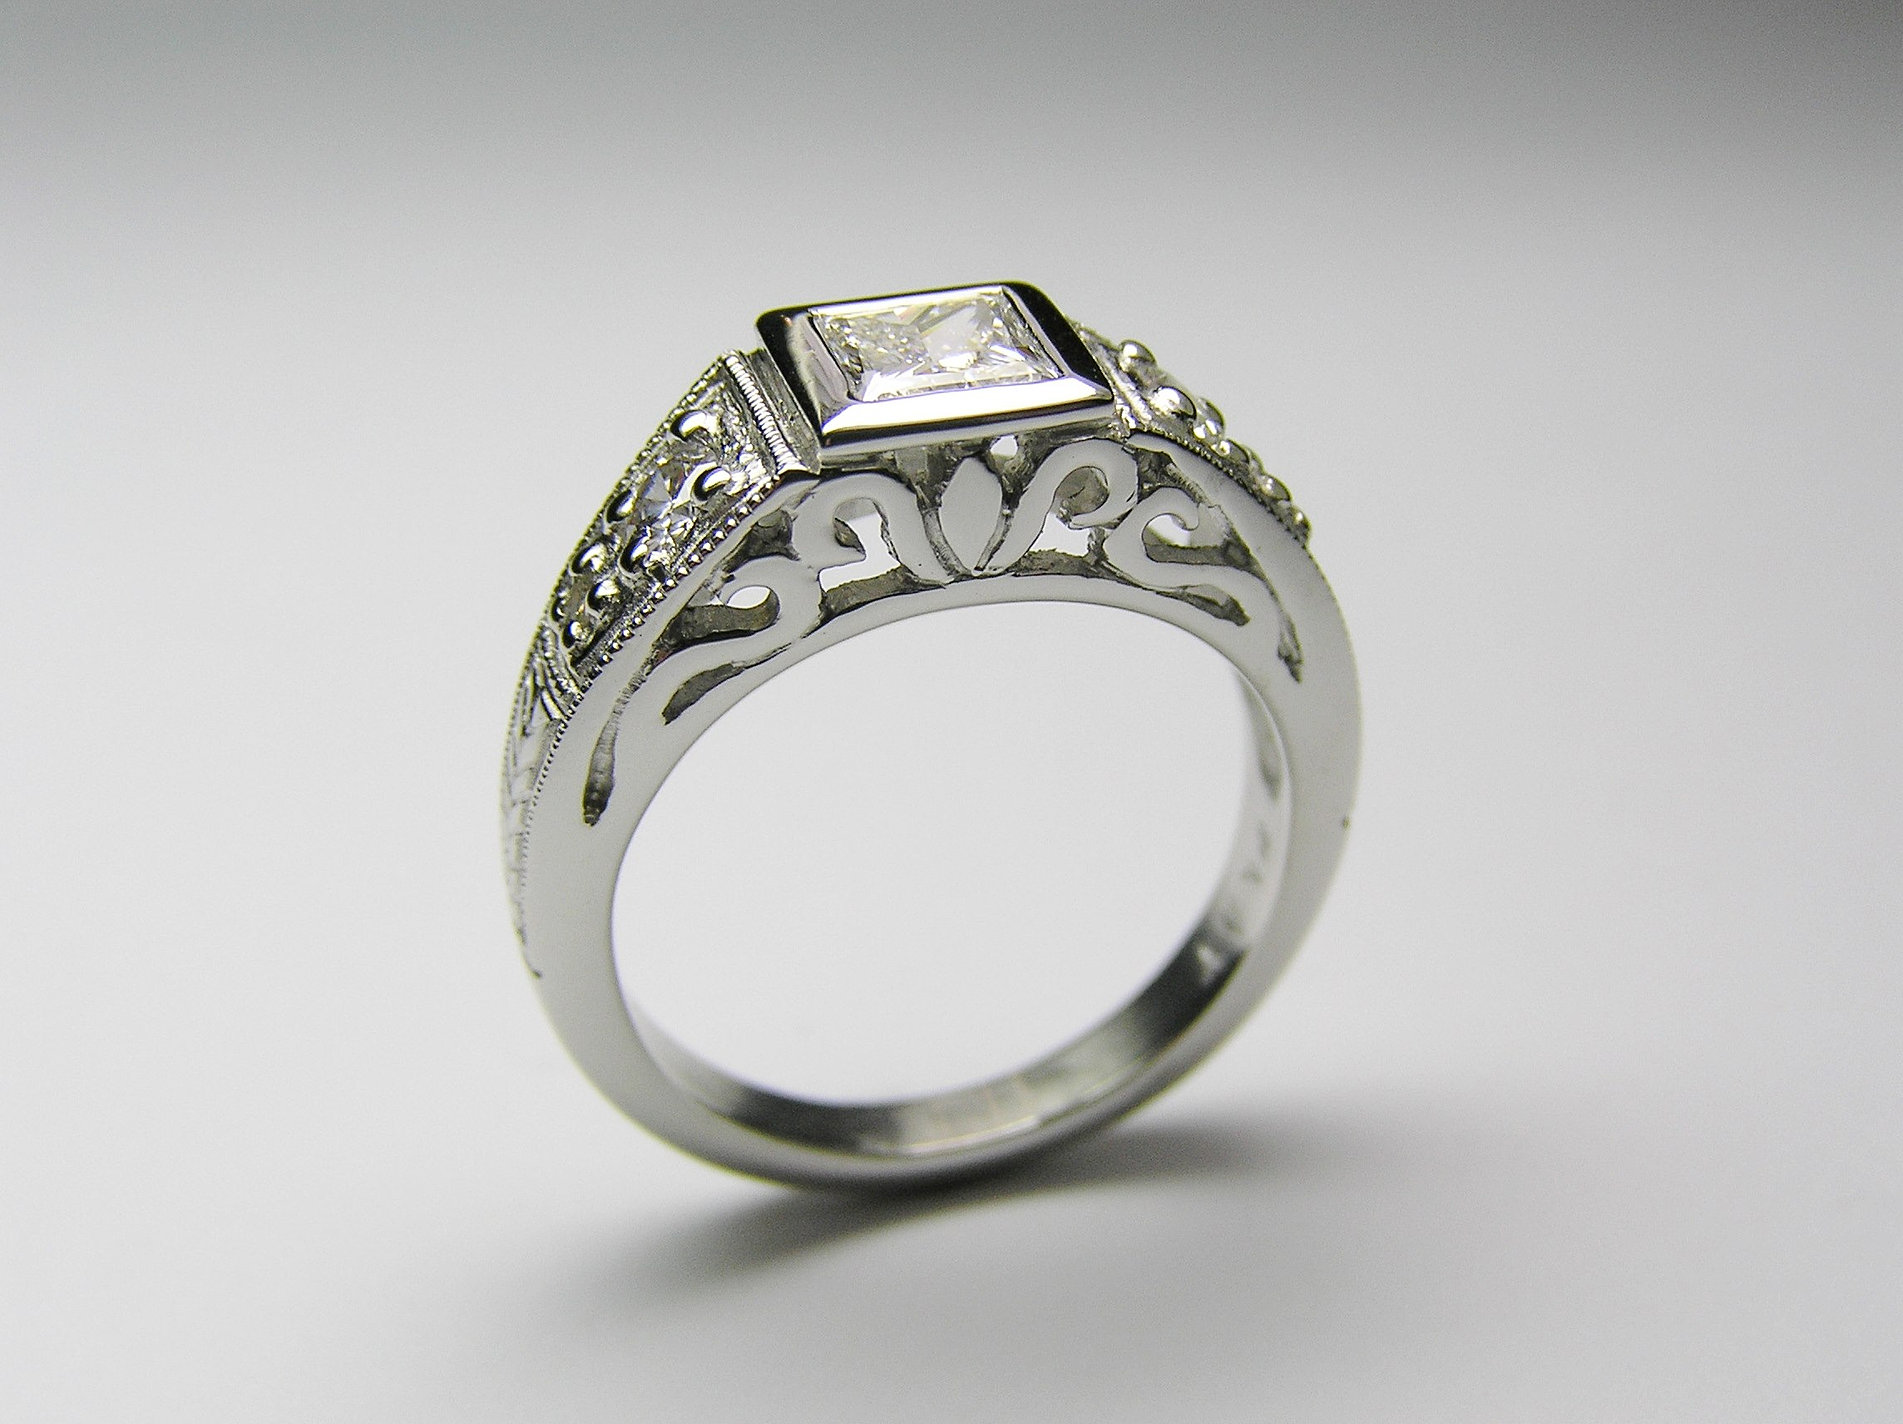 engagement weddng rings rings wedding Engagement Rings Wedding bands